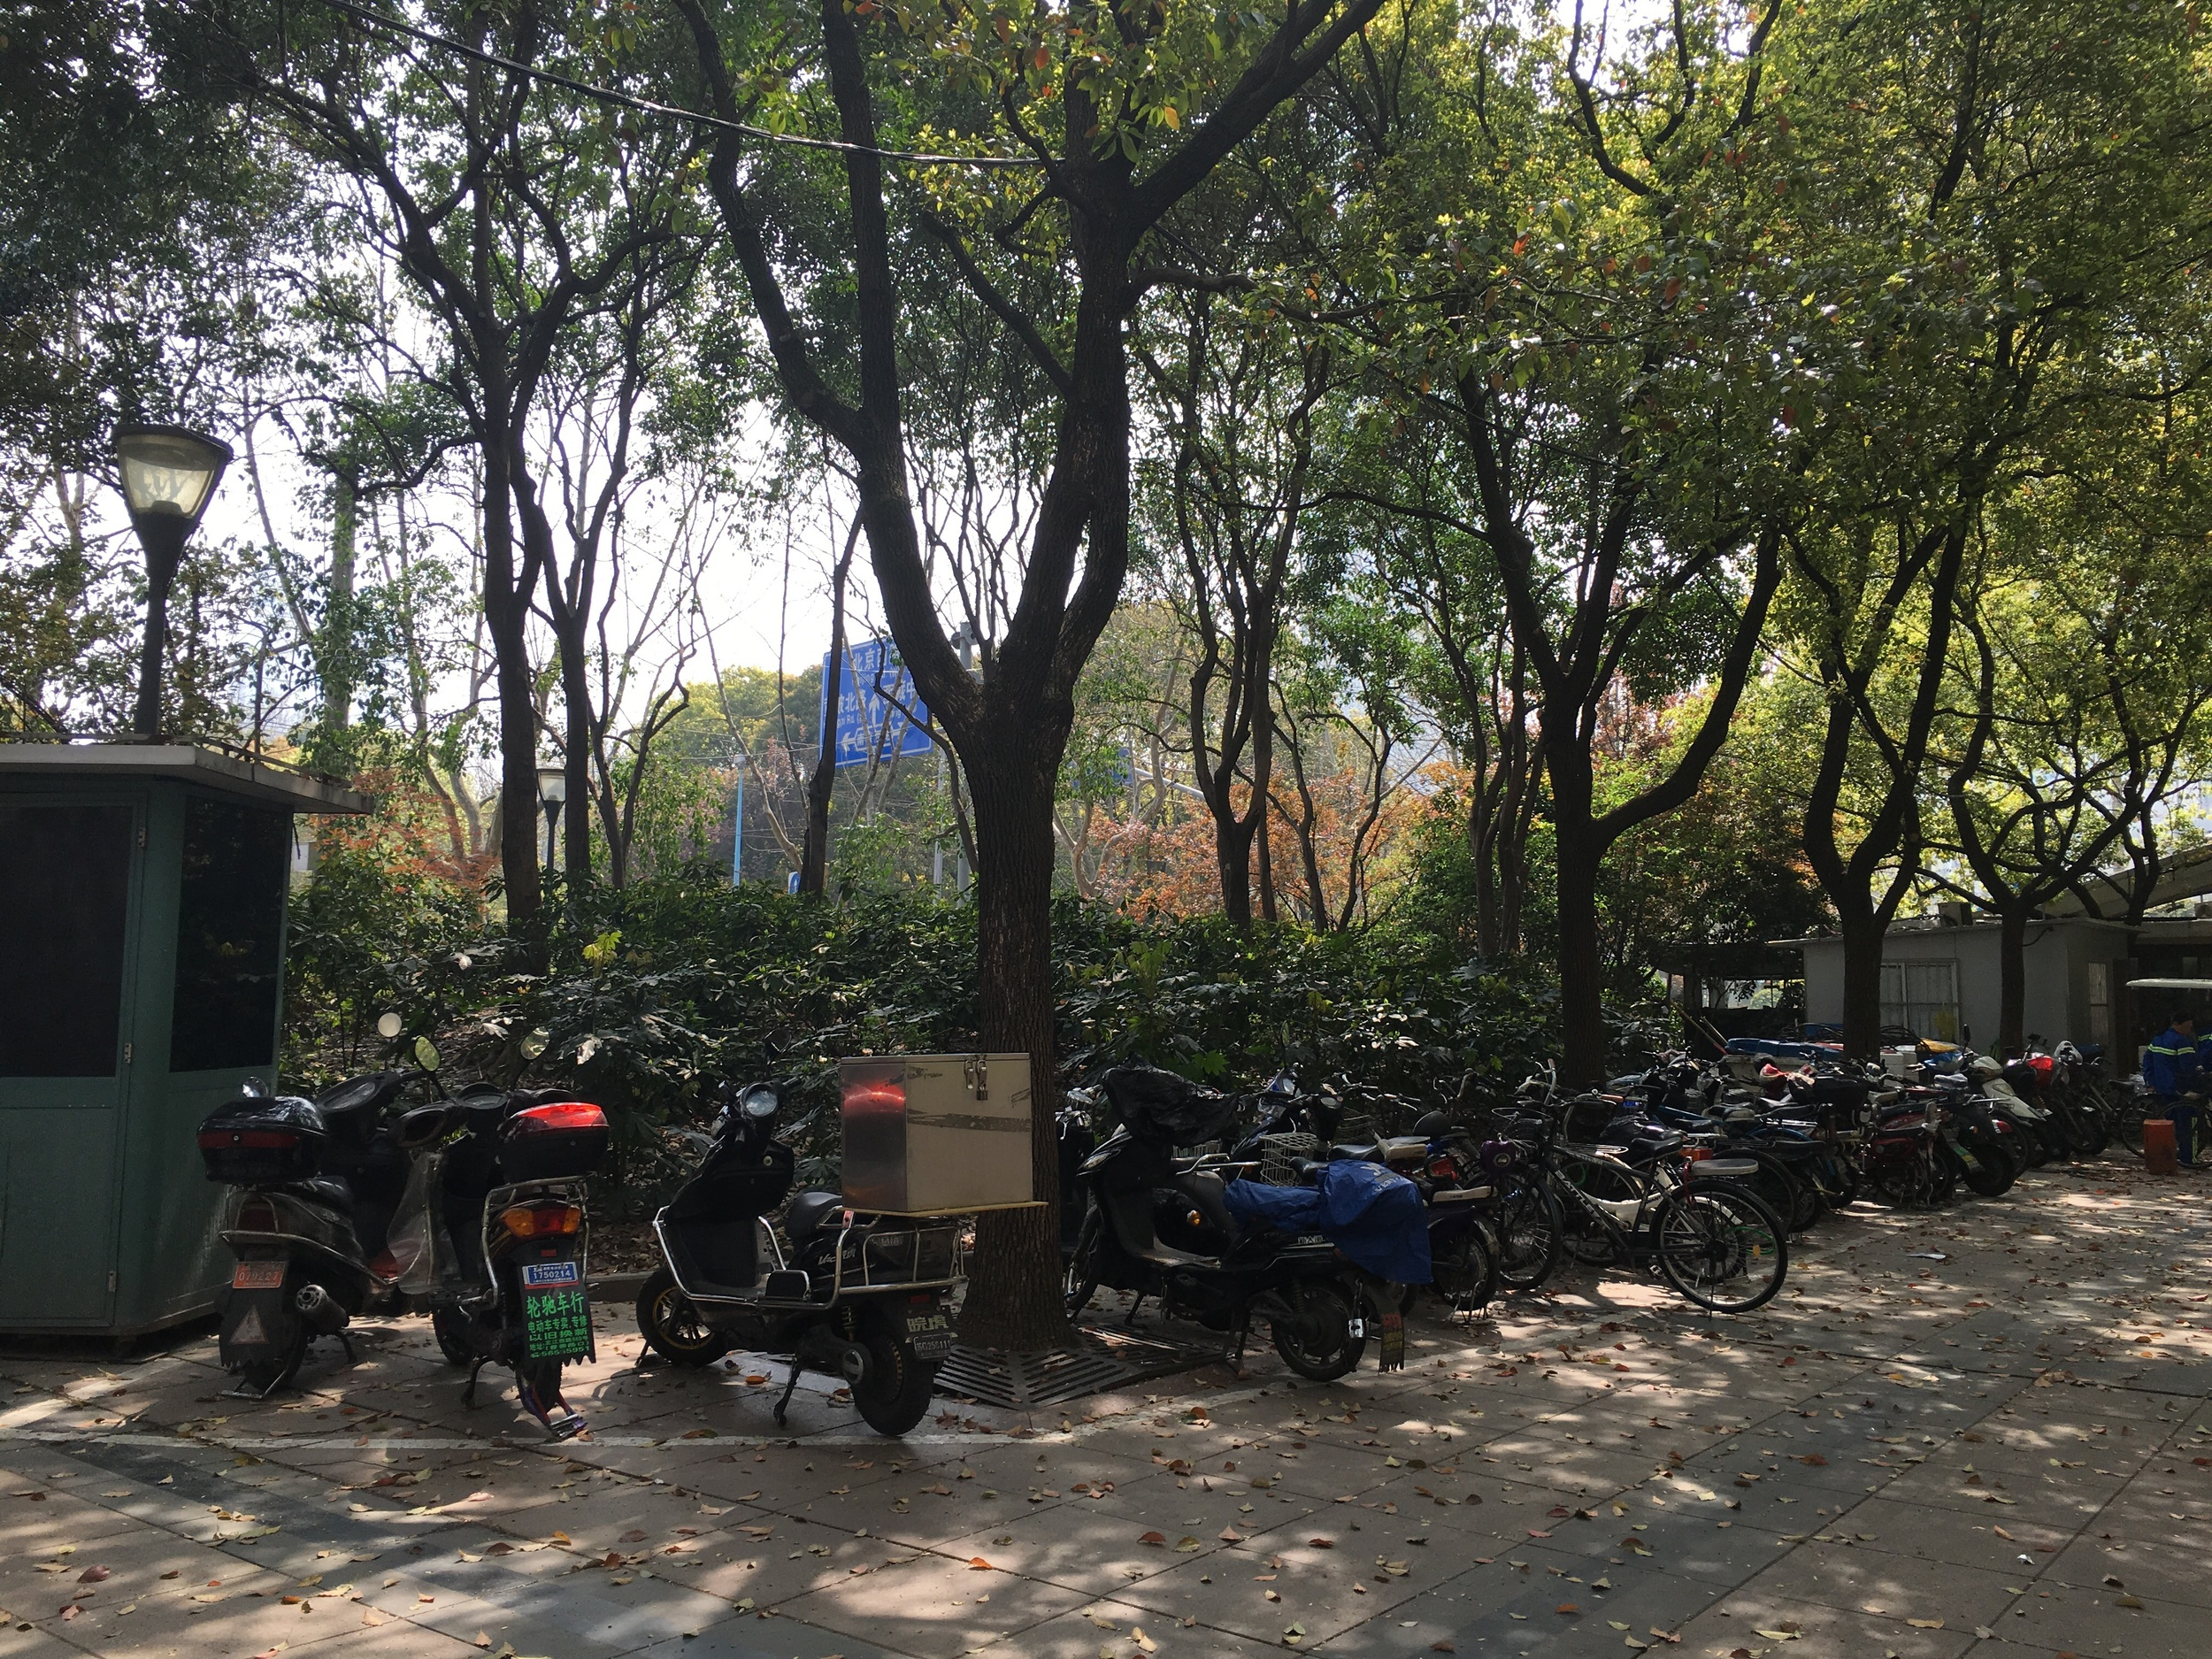 Lots of mopeds/bikes